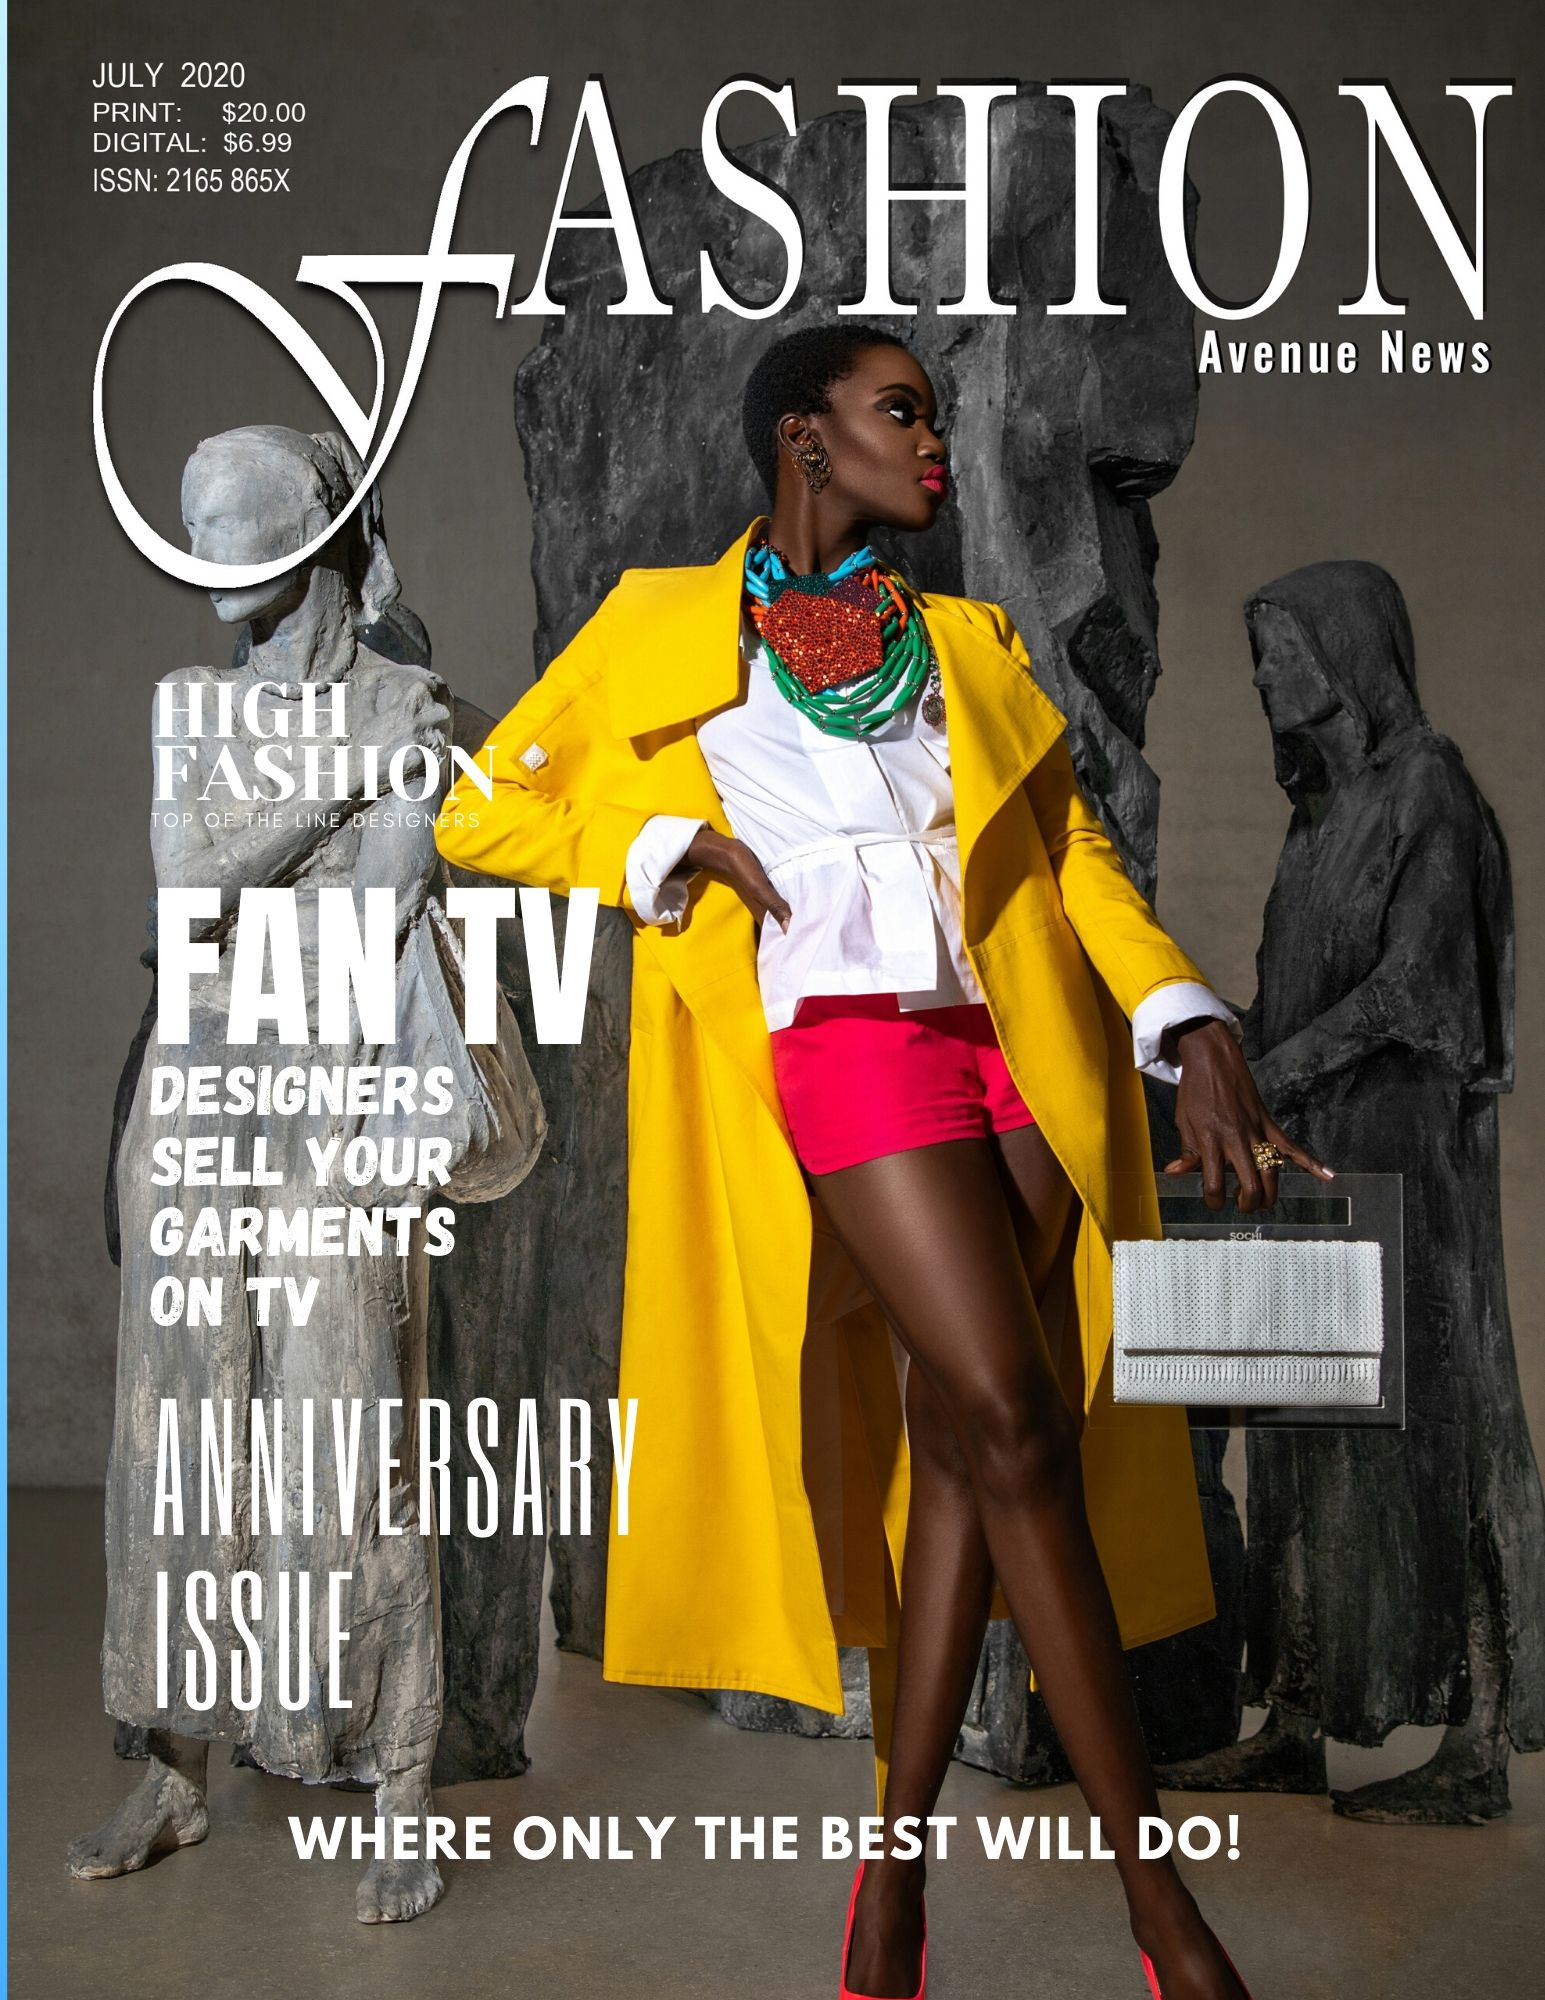 FASHION AVENUE NEWS JULY COVERS – #FABULOUS TAKE A LOOK